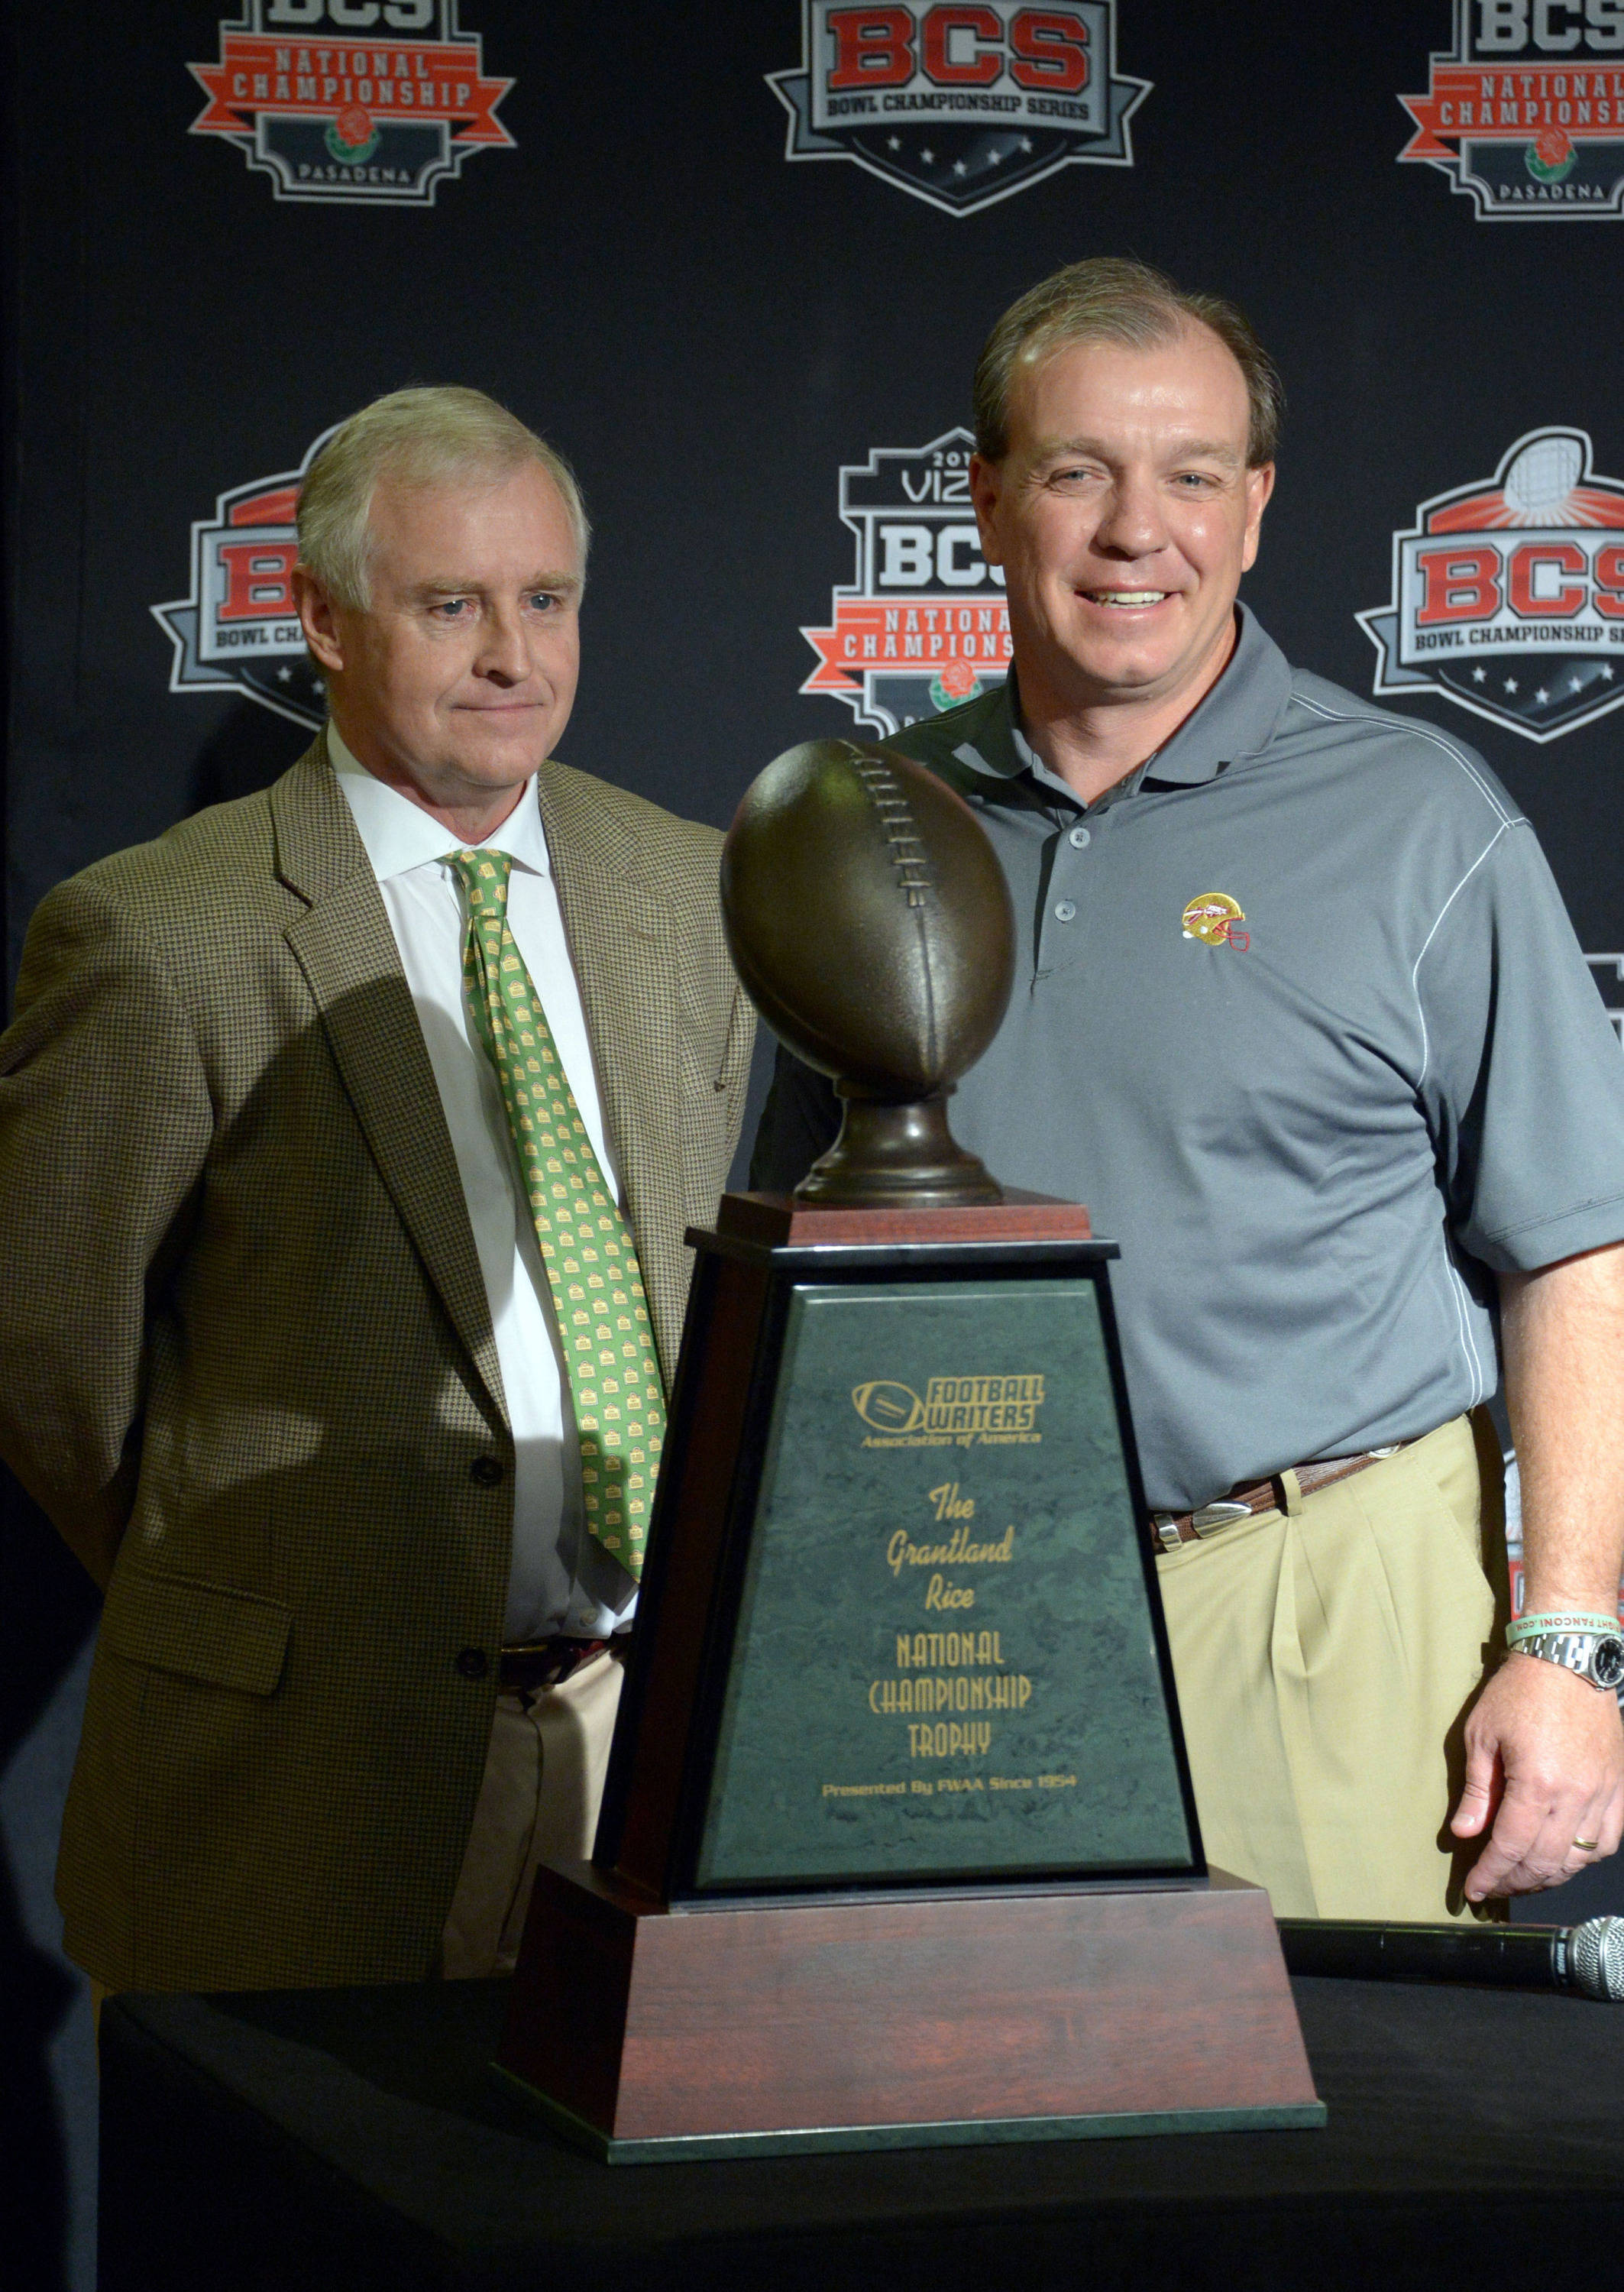 Florida State Seminoles coach Jimbo Fisher (right) is presented the Grantland Rice trophy by Football Writers Association president and Austin-American Statesman columnist Kirk Bohls at 2014 BCS National Championship press conference at Newport Beach Marriott. Mandatory Credit: Kirby Lee-USA TODAY Sports